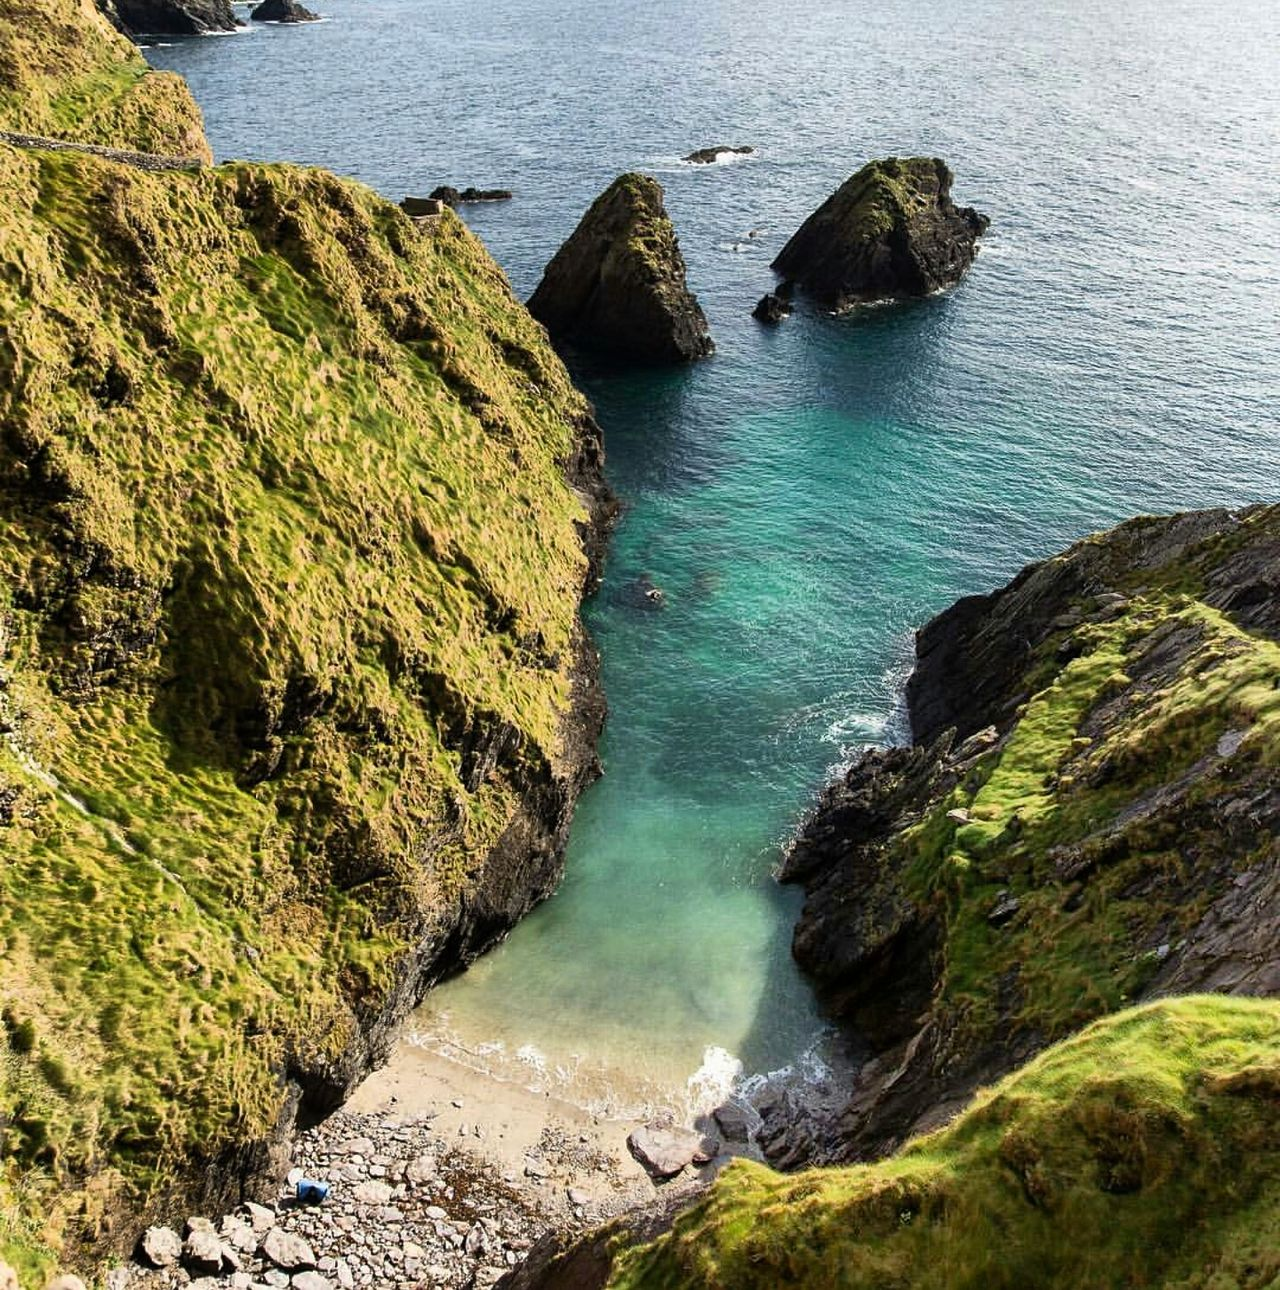 Another stunning photo from dun chaoin, dingle Water Outdoors Sea Beauty In Nature Nature Dingle Peninsula Dingle Landscape Photo Nature Photography Stunning Ireland Ireland Lovers Ireland Coast Ireland Landscapes Ireland🍀 Nature Water High Angle View Beauty In Nature Sunlight Sea Rock - Object Outdoors Scenics